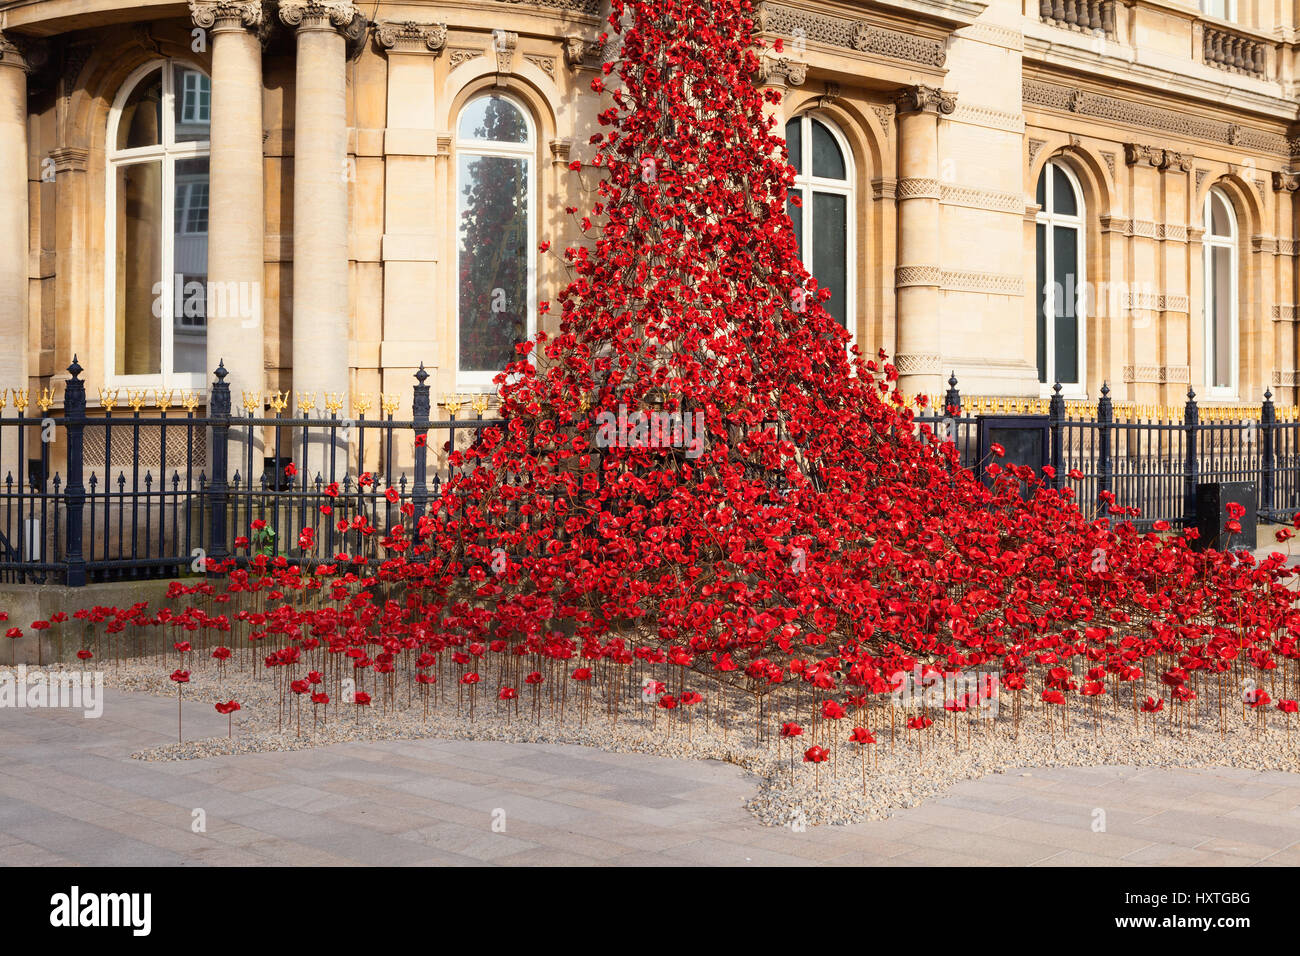 Hull, East Yorkshire, UK. 30th March 2017. Poppies: Weeping Window by Paul Cummins artist and Tom Piper designer. - Stock Image